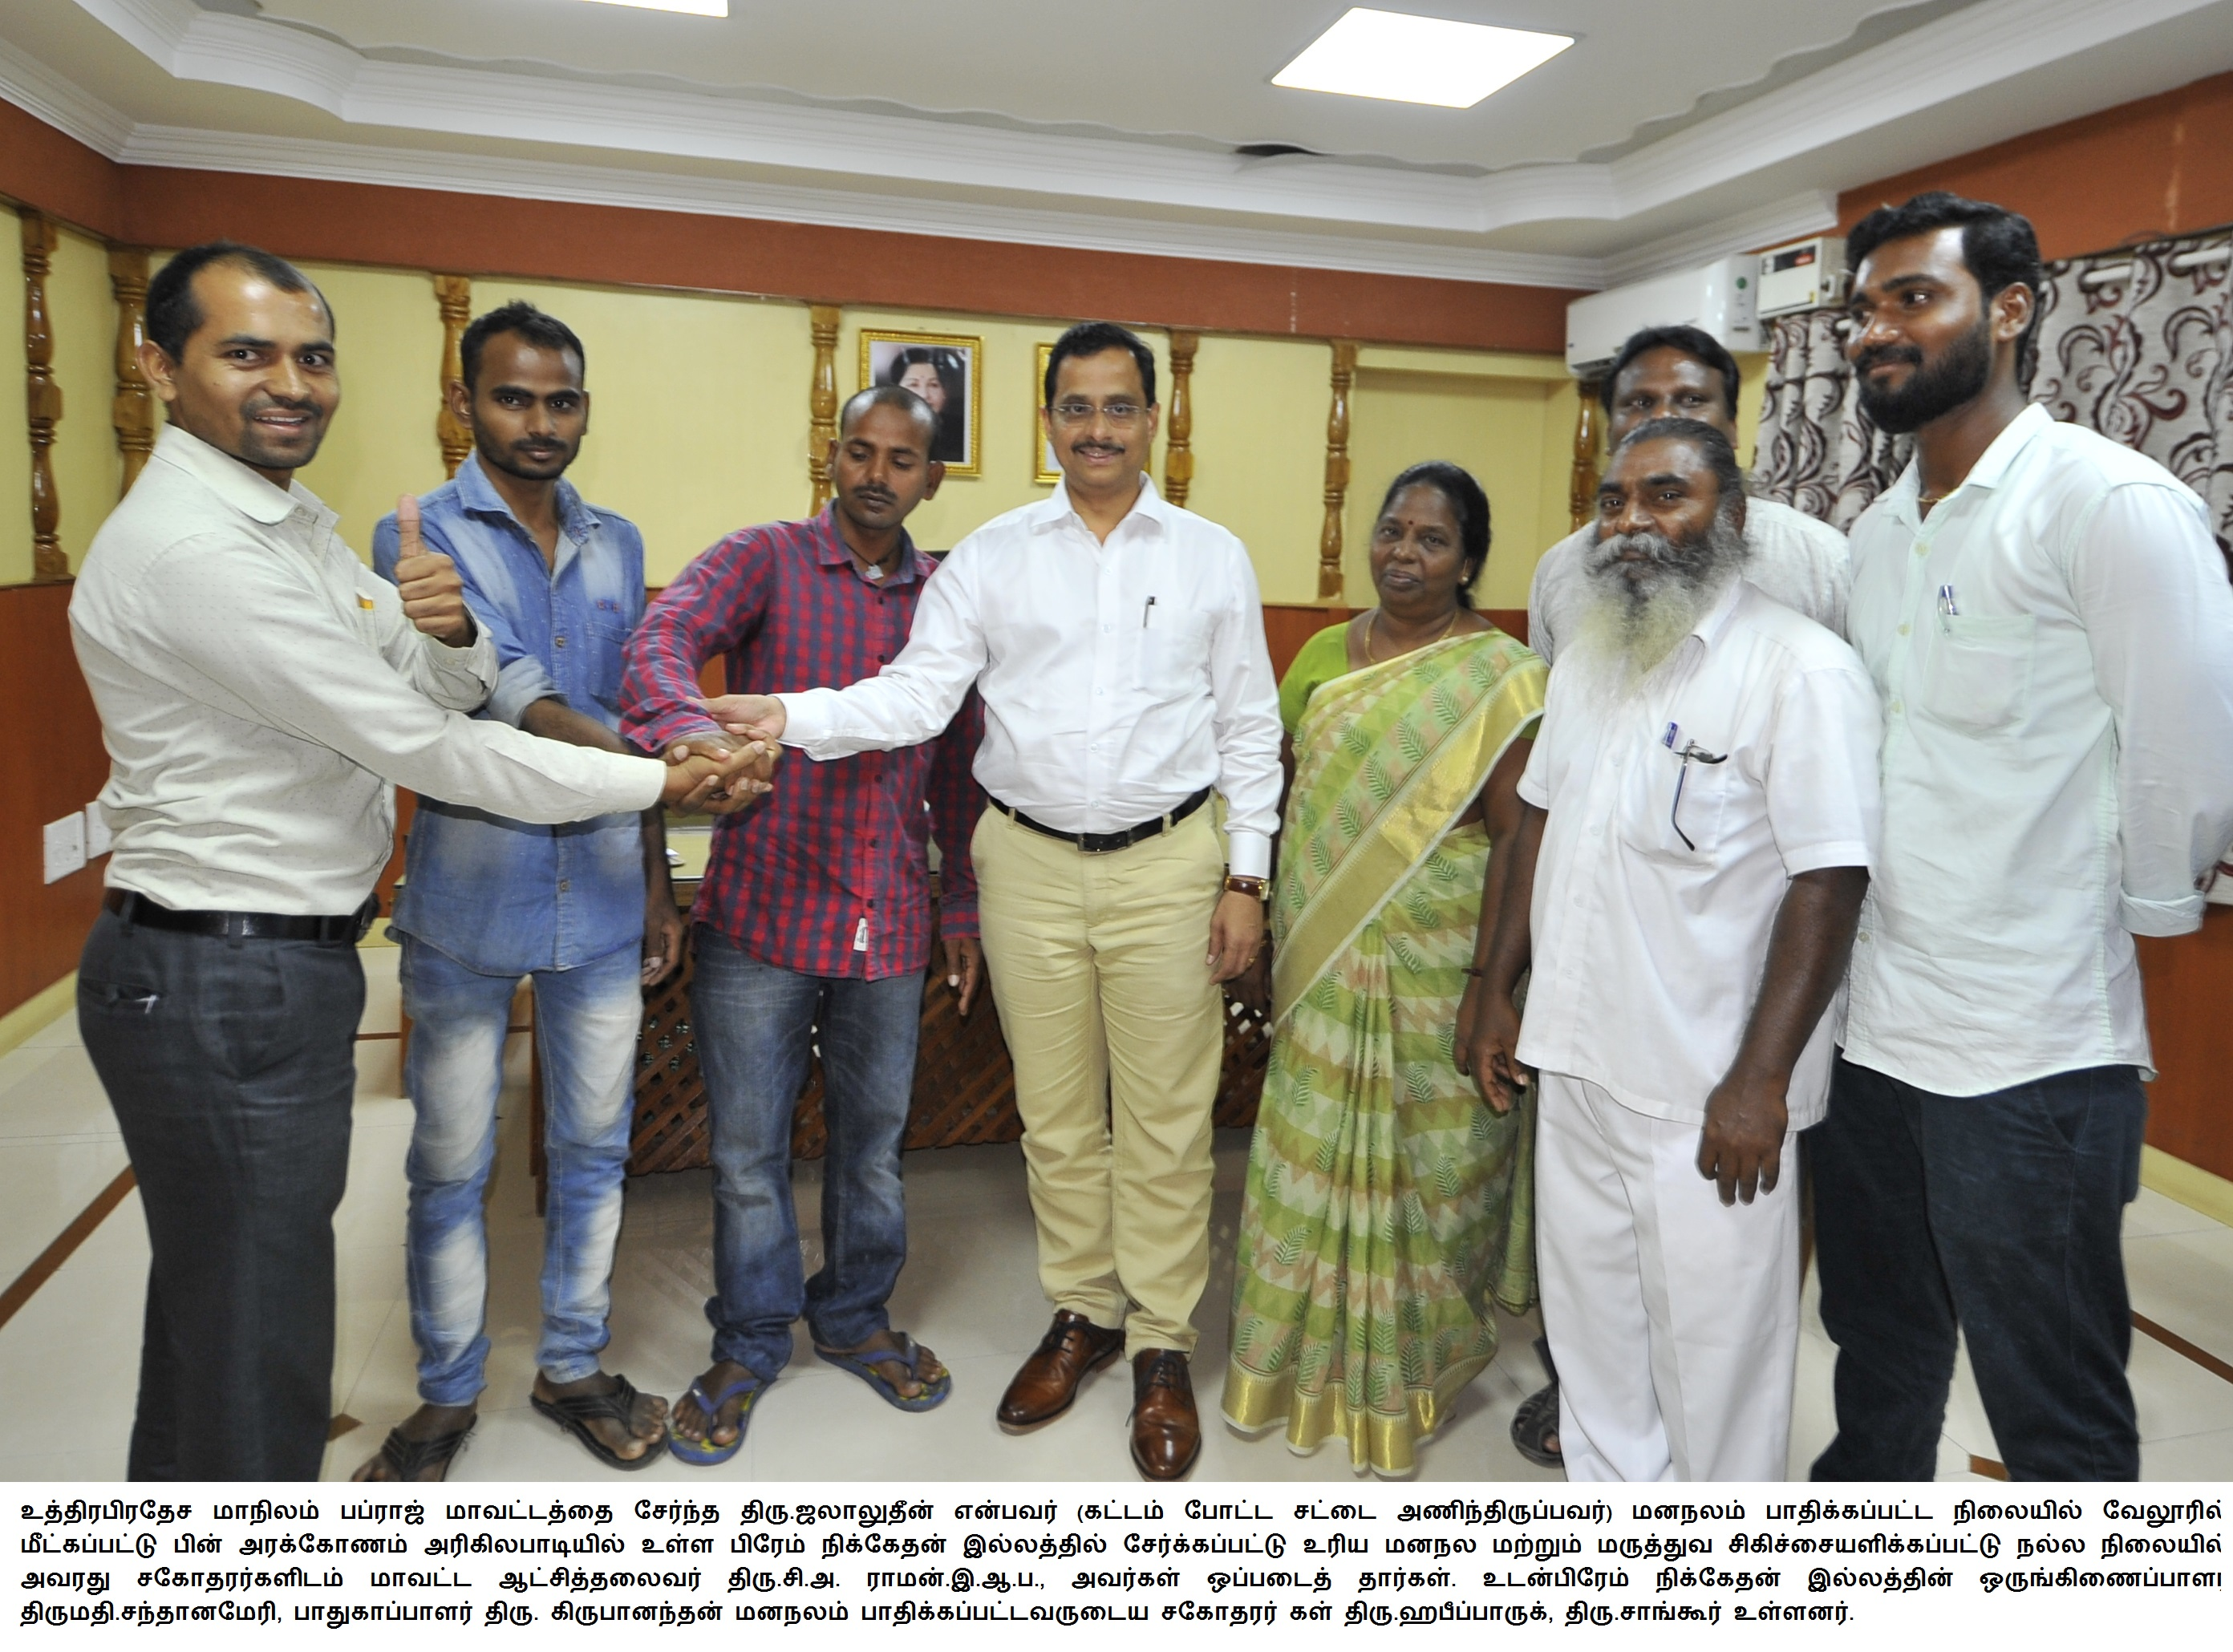 Mentally retarded person from Uttar Pradesh found in Vellore handed over to his family 10/12/2018